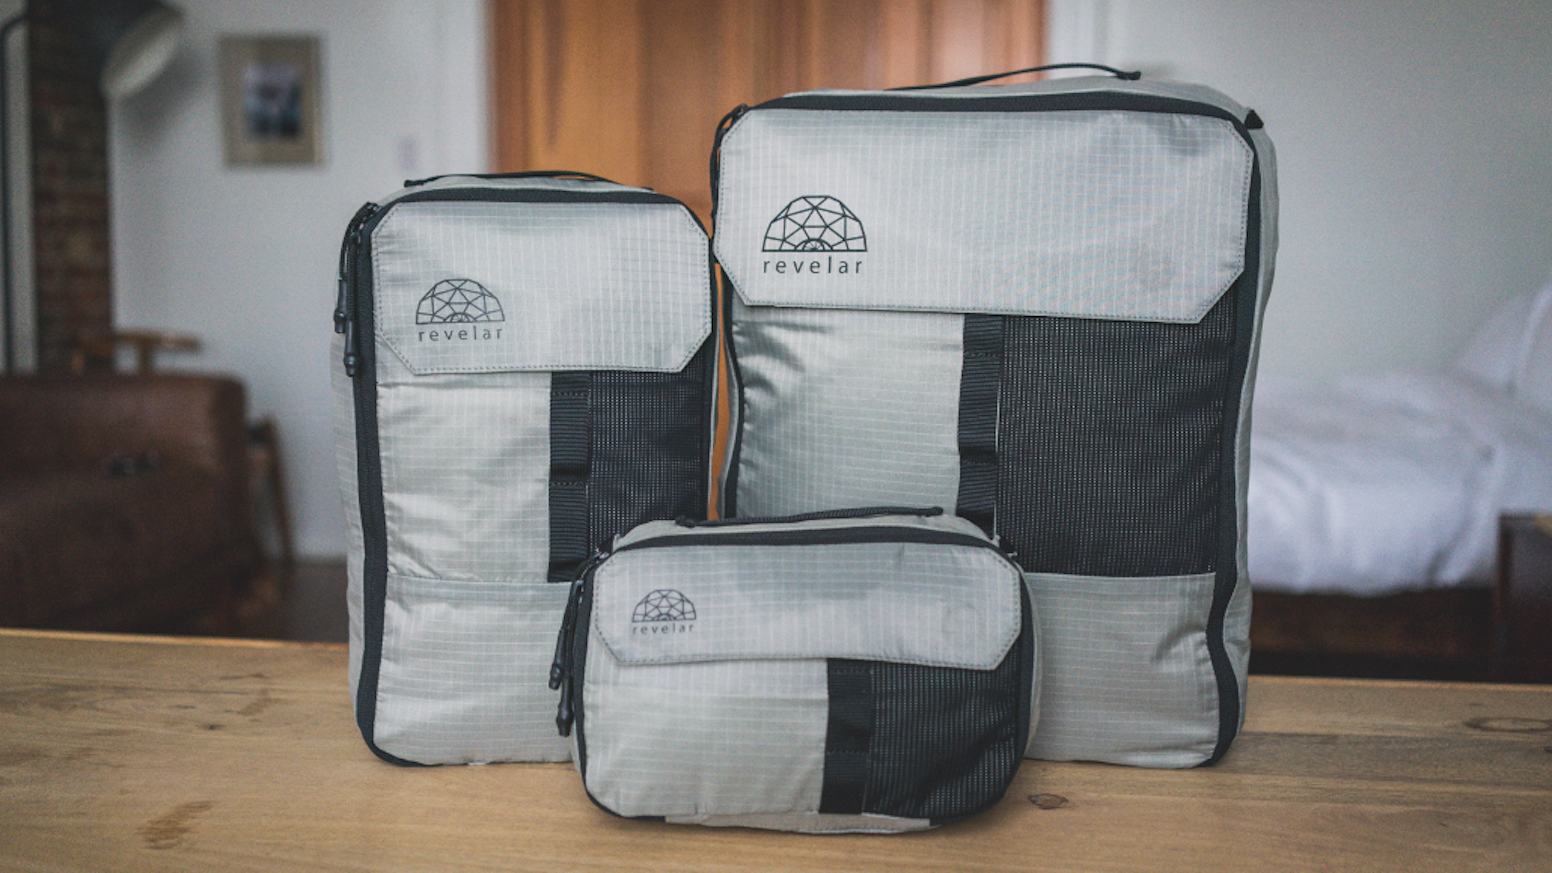 A set of versatile compression packing cubes to maximize space in luggage, while adding multiple carrying options.